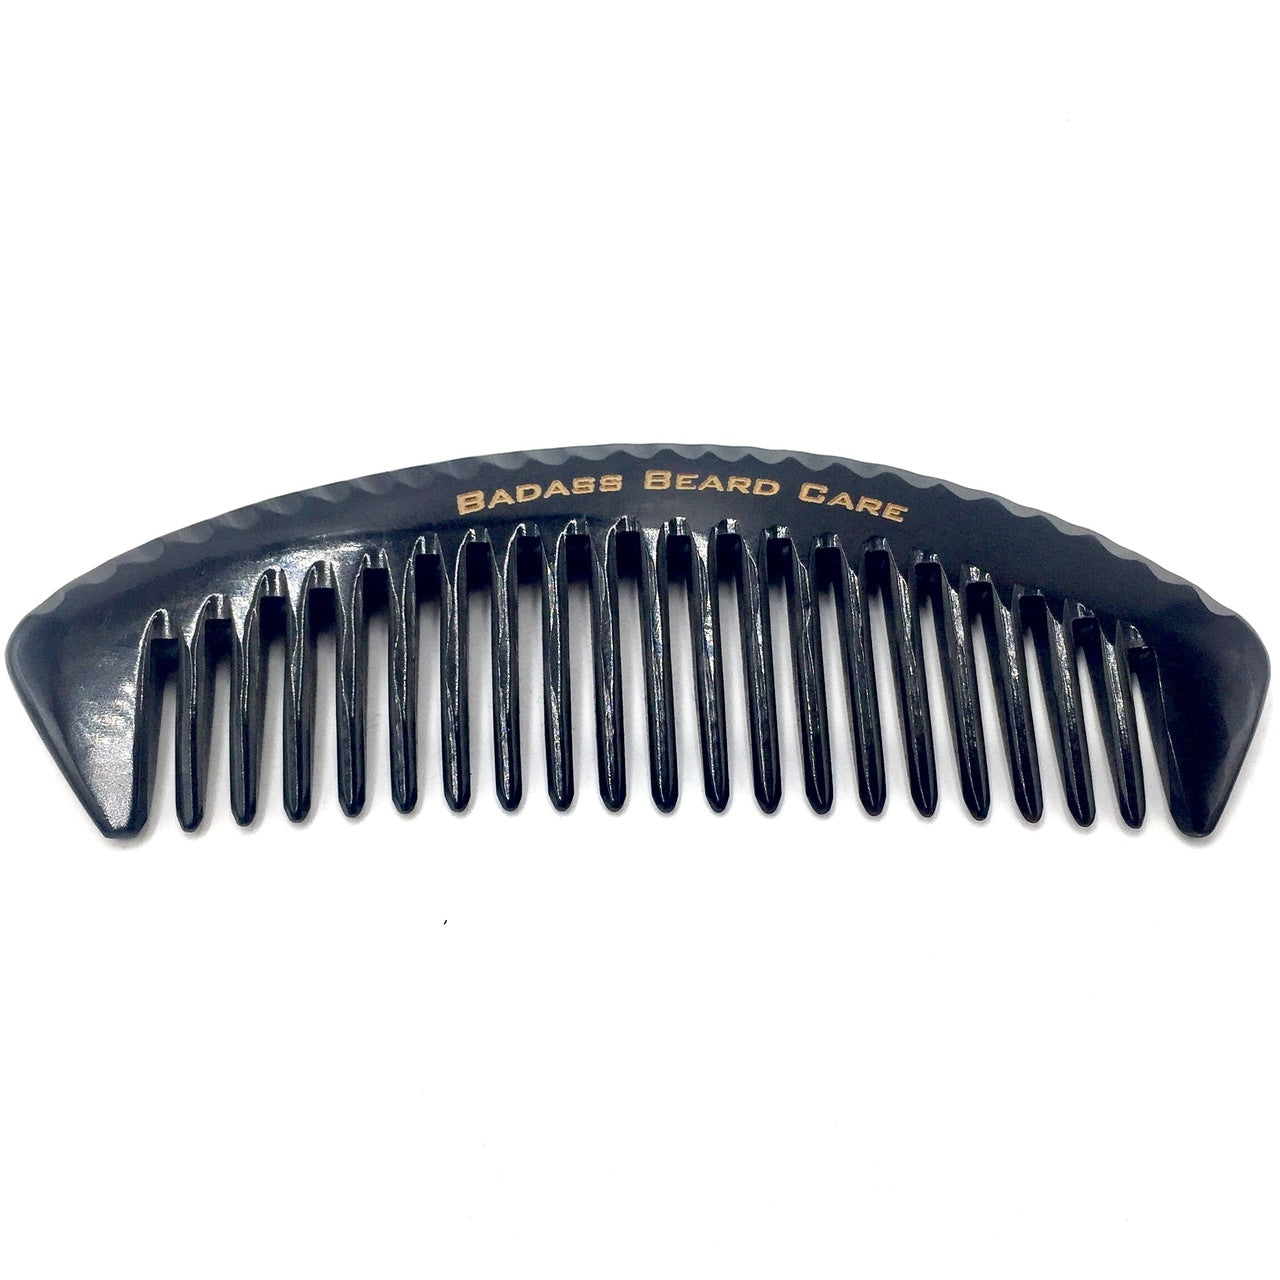 wide tooth oxhorn comb, badass beard care